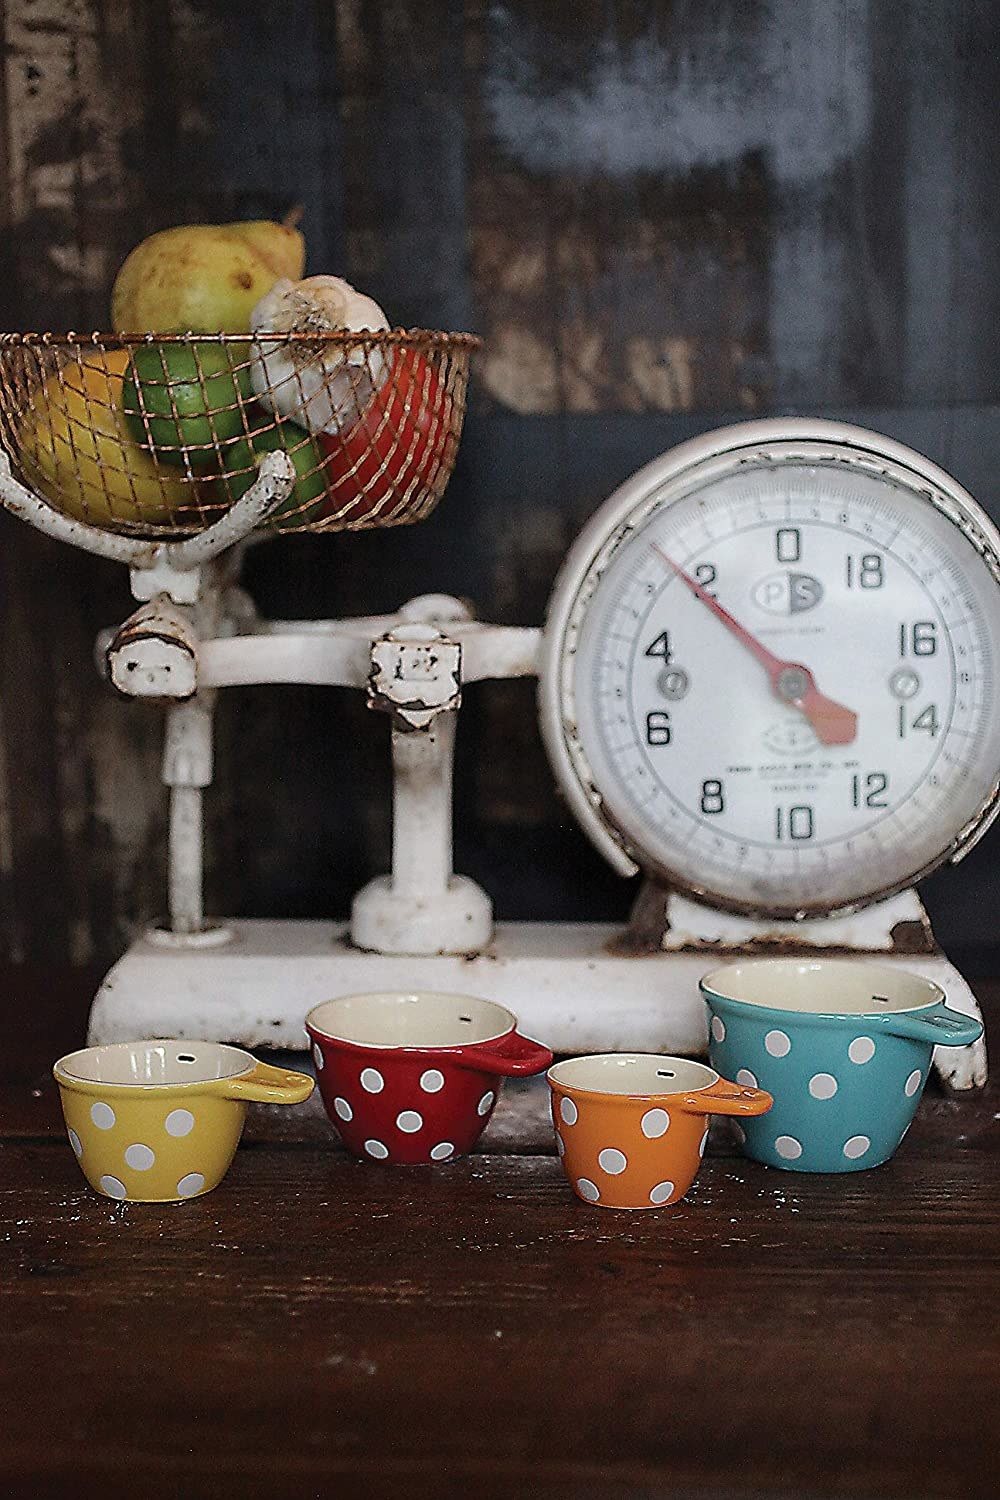 Four polka dot measuring cups in front of a decorative cooking scale